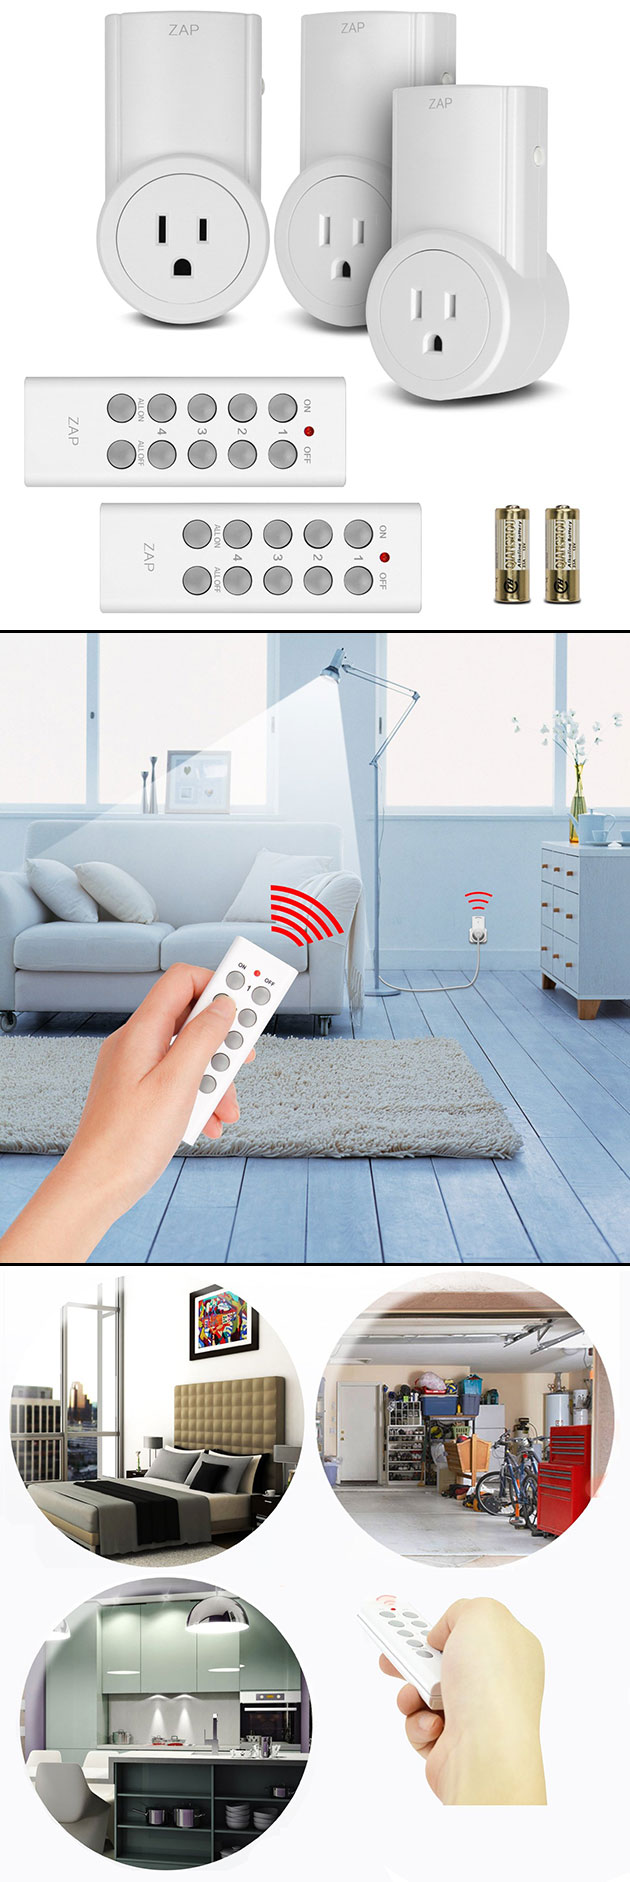 Etekcity Wireless Electrical Outlet